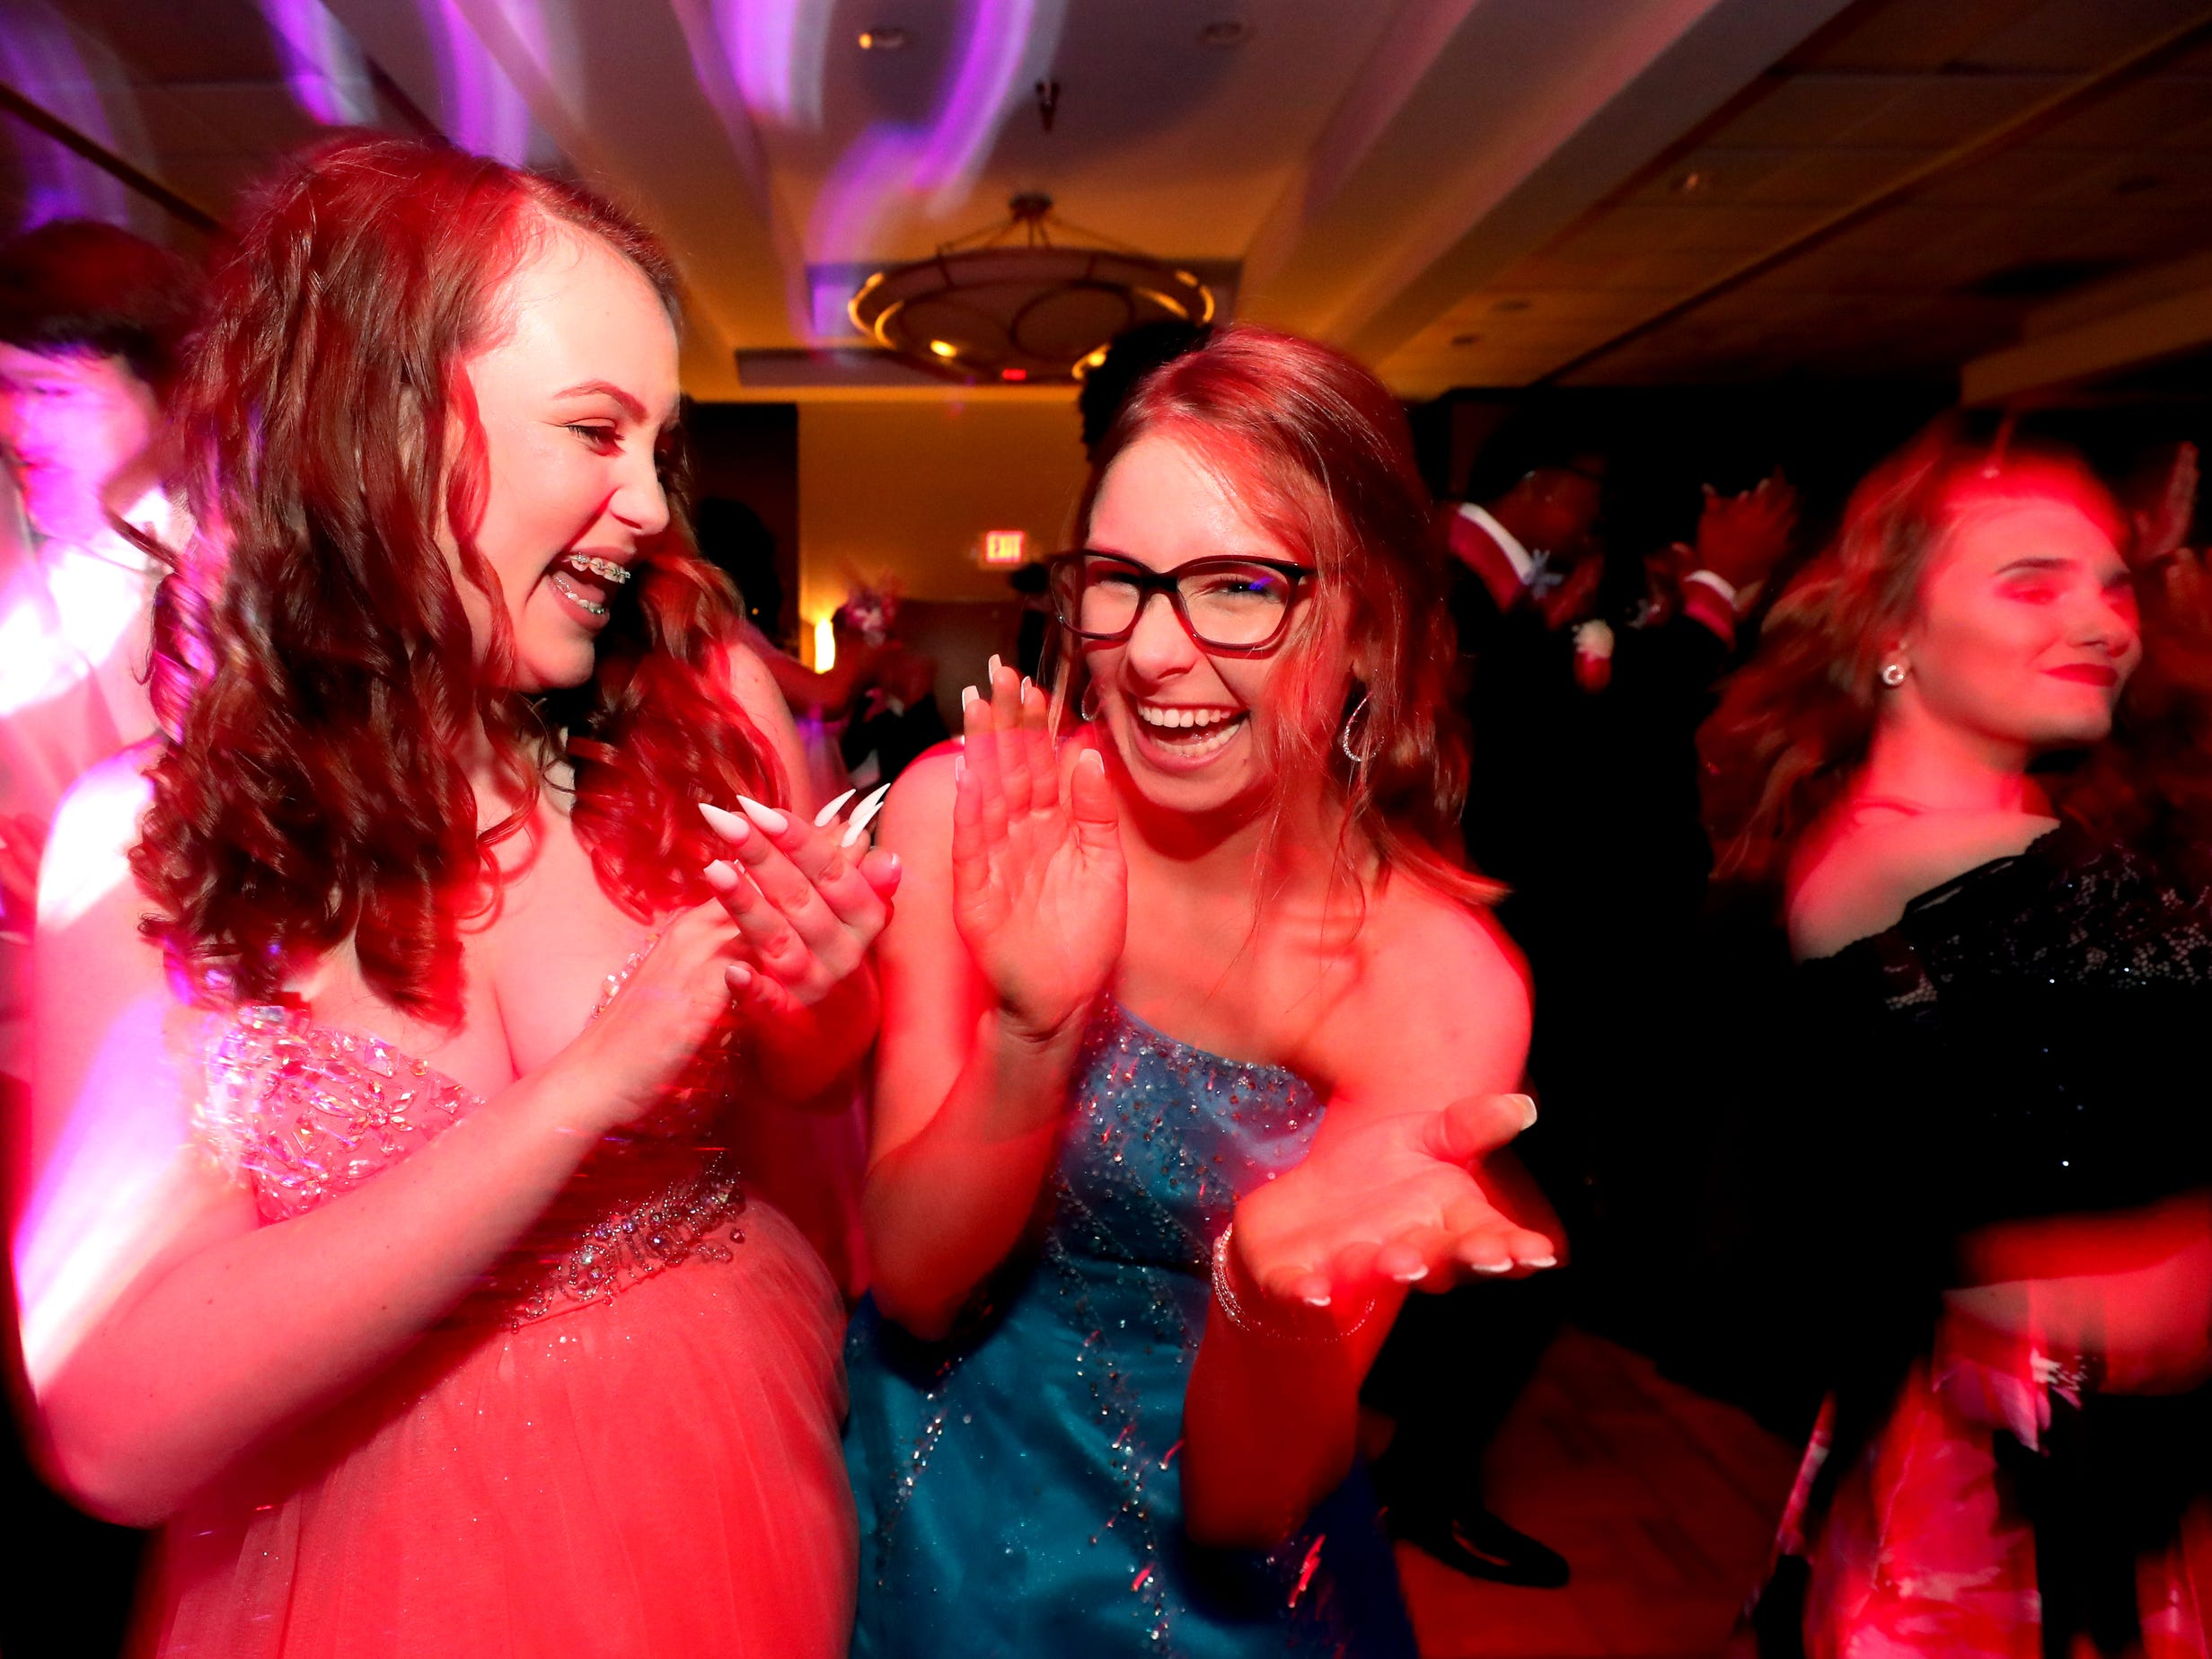 Abby Carr, left and Erin Carlson, right dance on the dance floor at Holloway's prom at the DoubleTree on Thursday April 18, 2019.